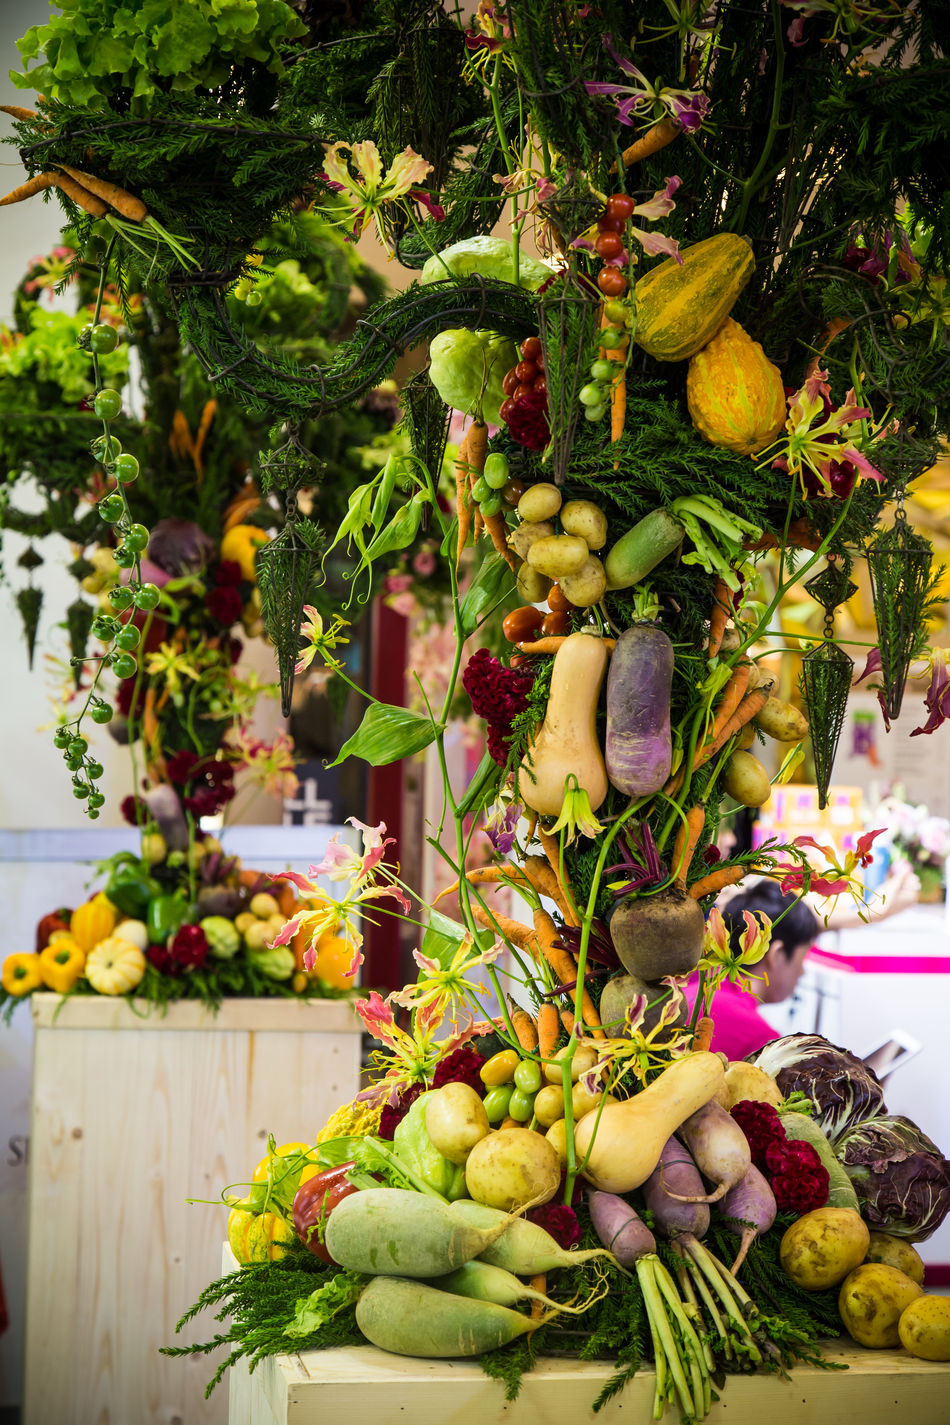 Food For Health Exhibition Adorn ArtWork Healthy Healthy Food Nature Organic Plant Vegetables